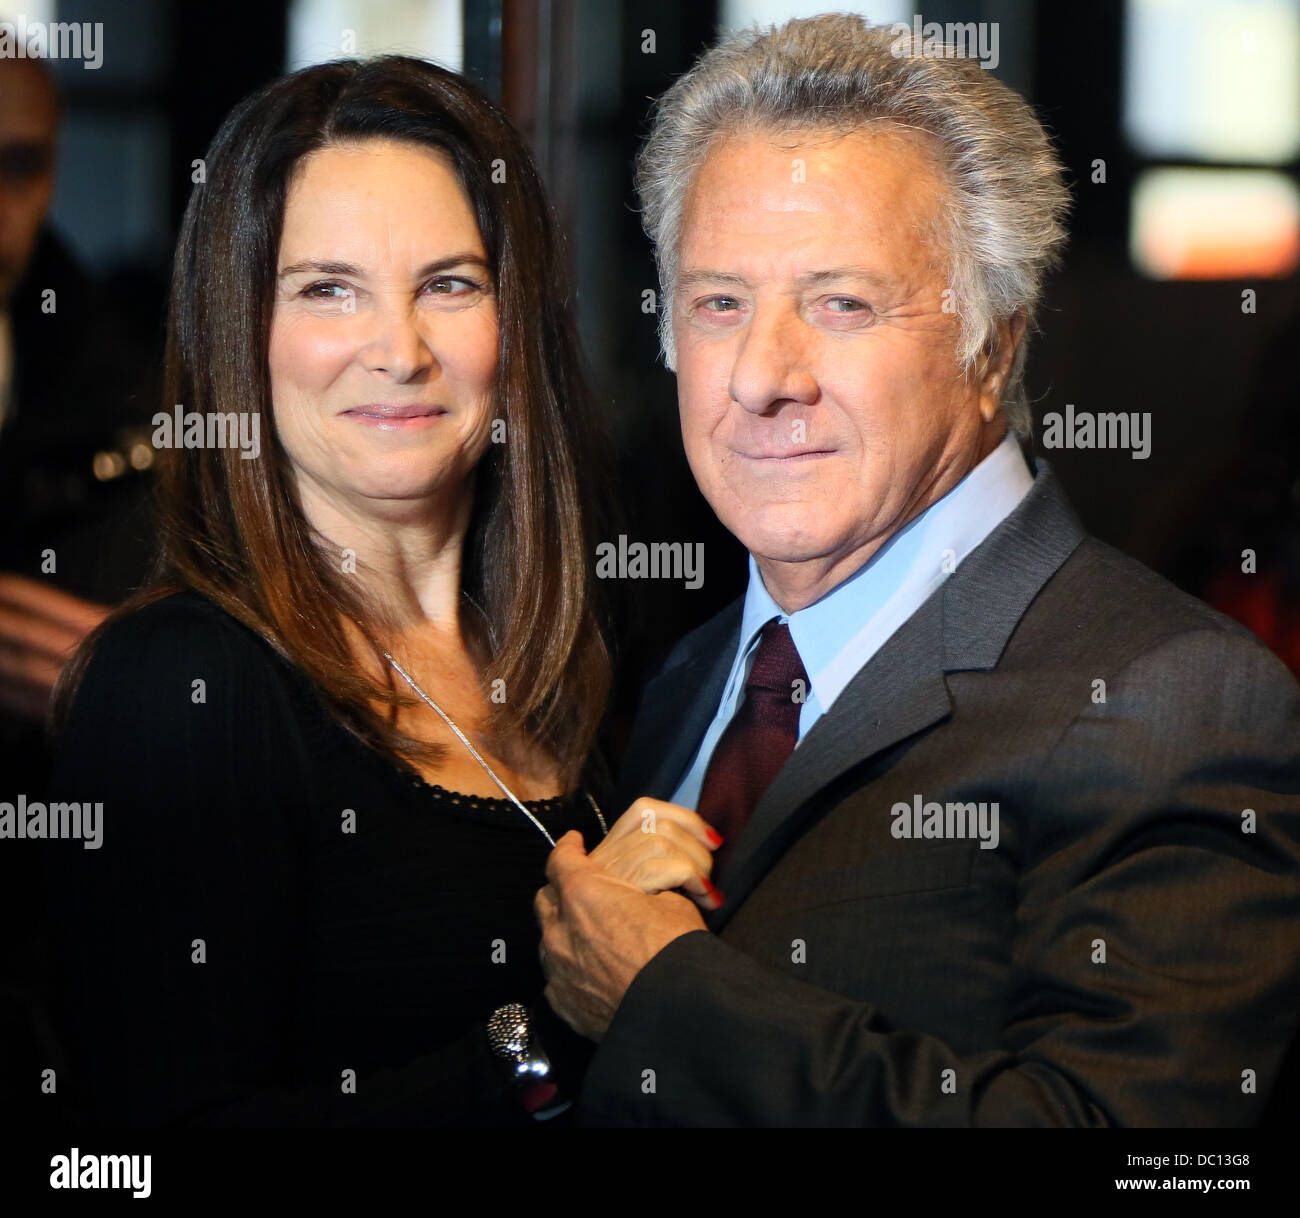 US actor and director Dustin Hoffman and his wife Lisa arrive for the premiere of his new movie 'Quartett' at Deutsche Stock Photo